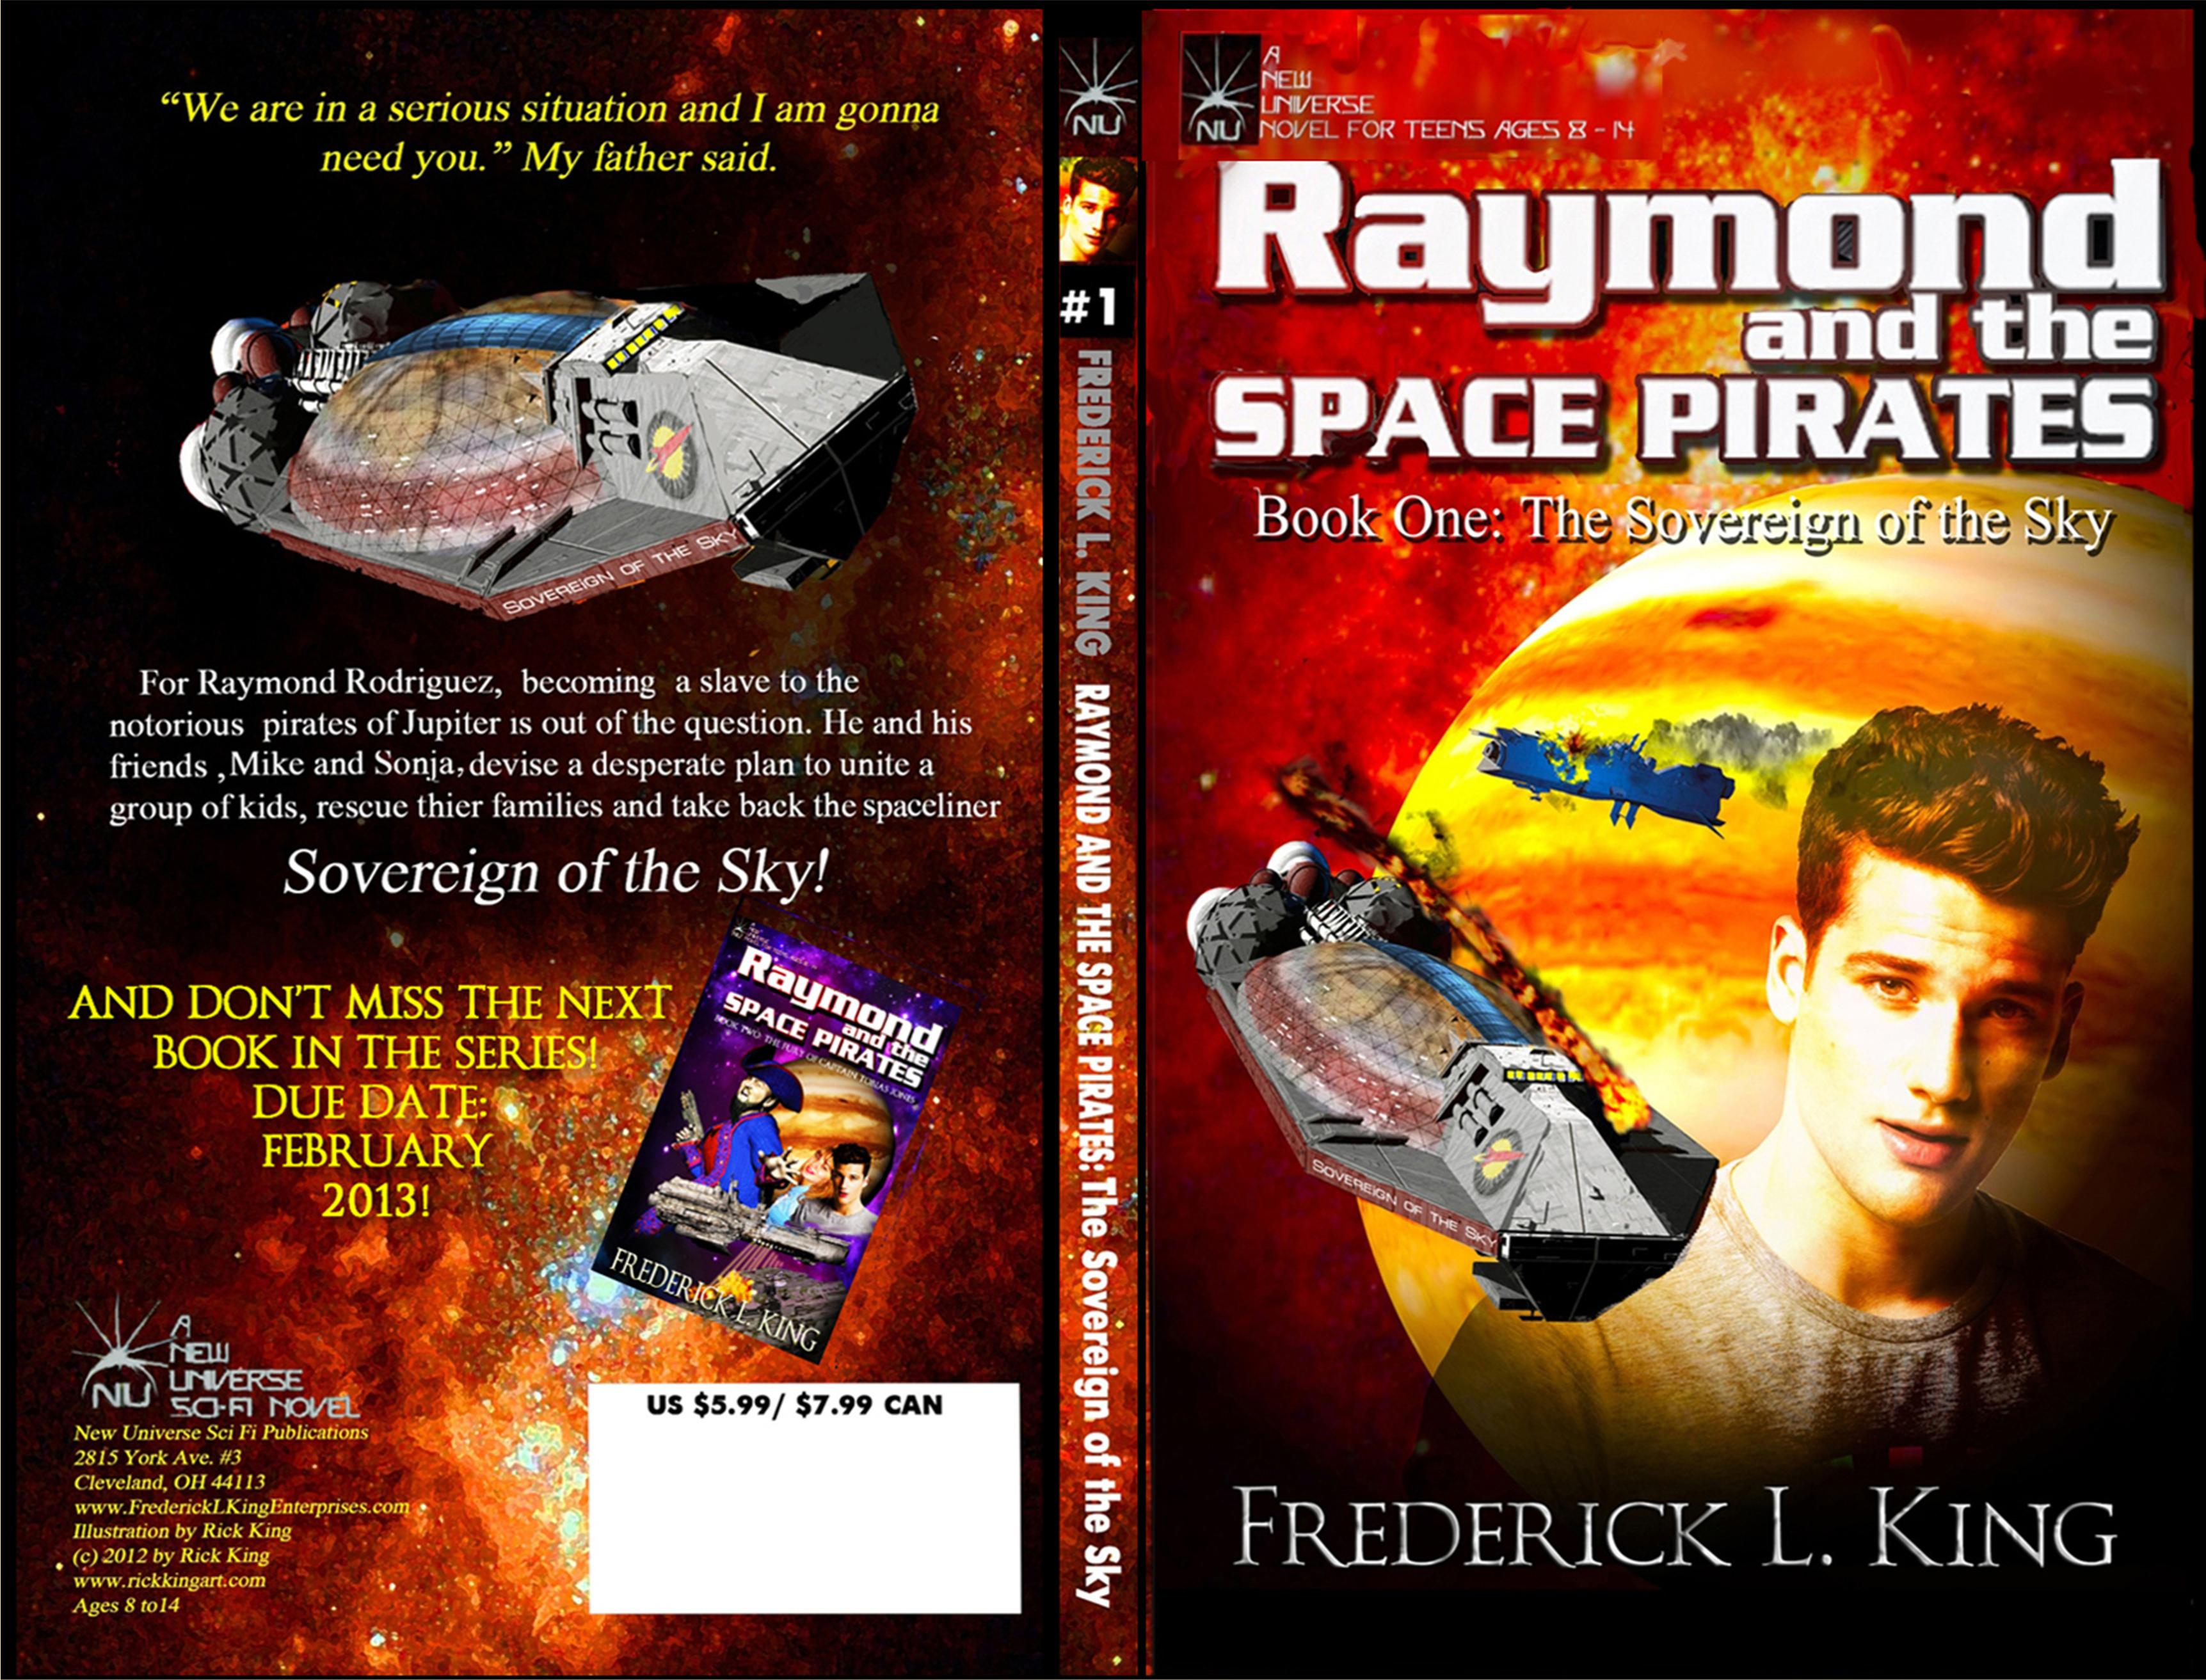 Raymond And The Space Pirates: The Sovereign of the Sky cover image